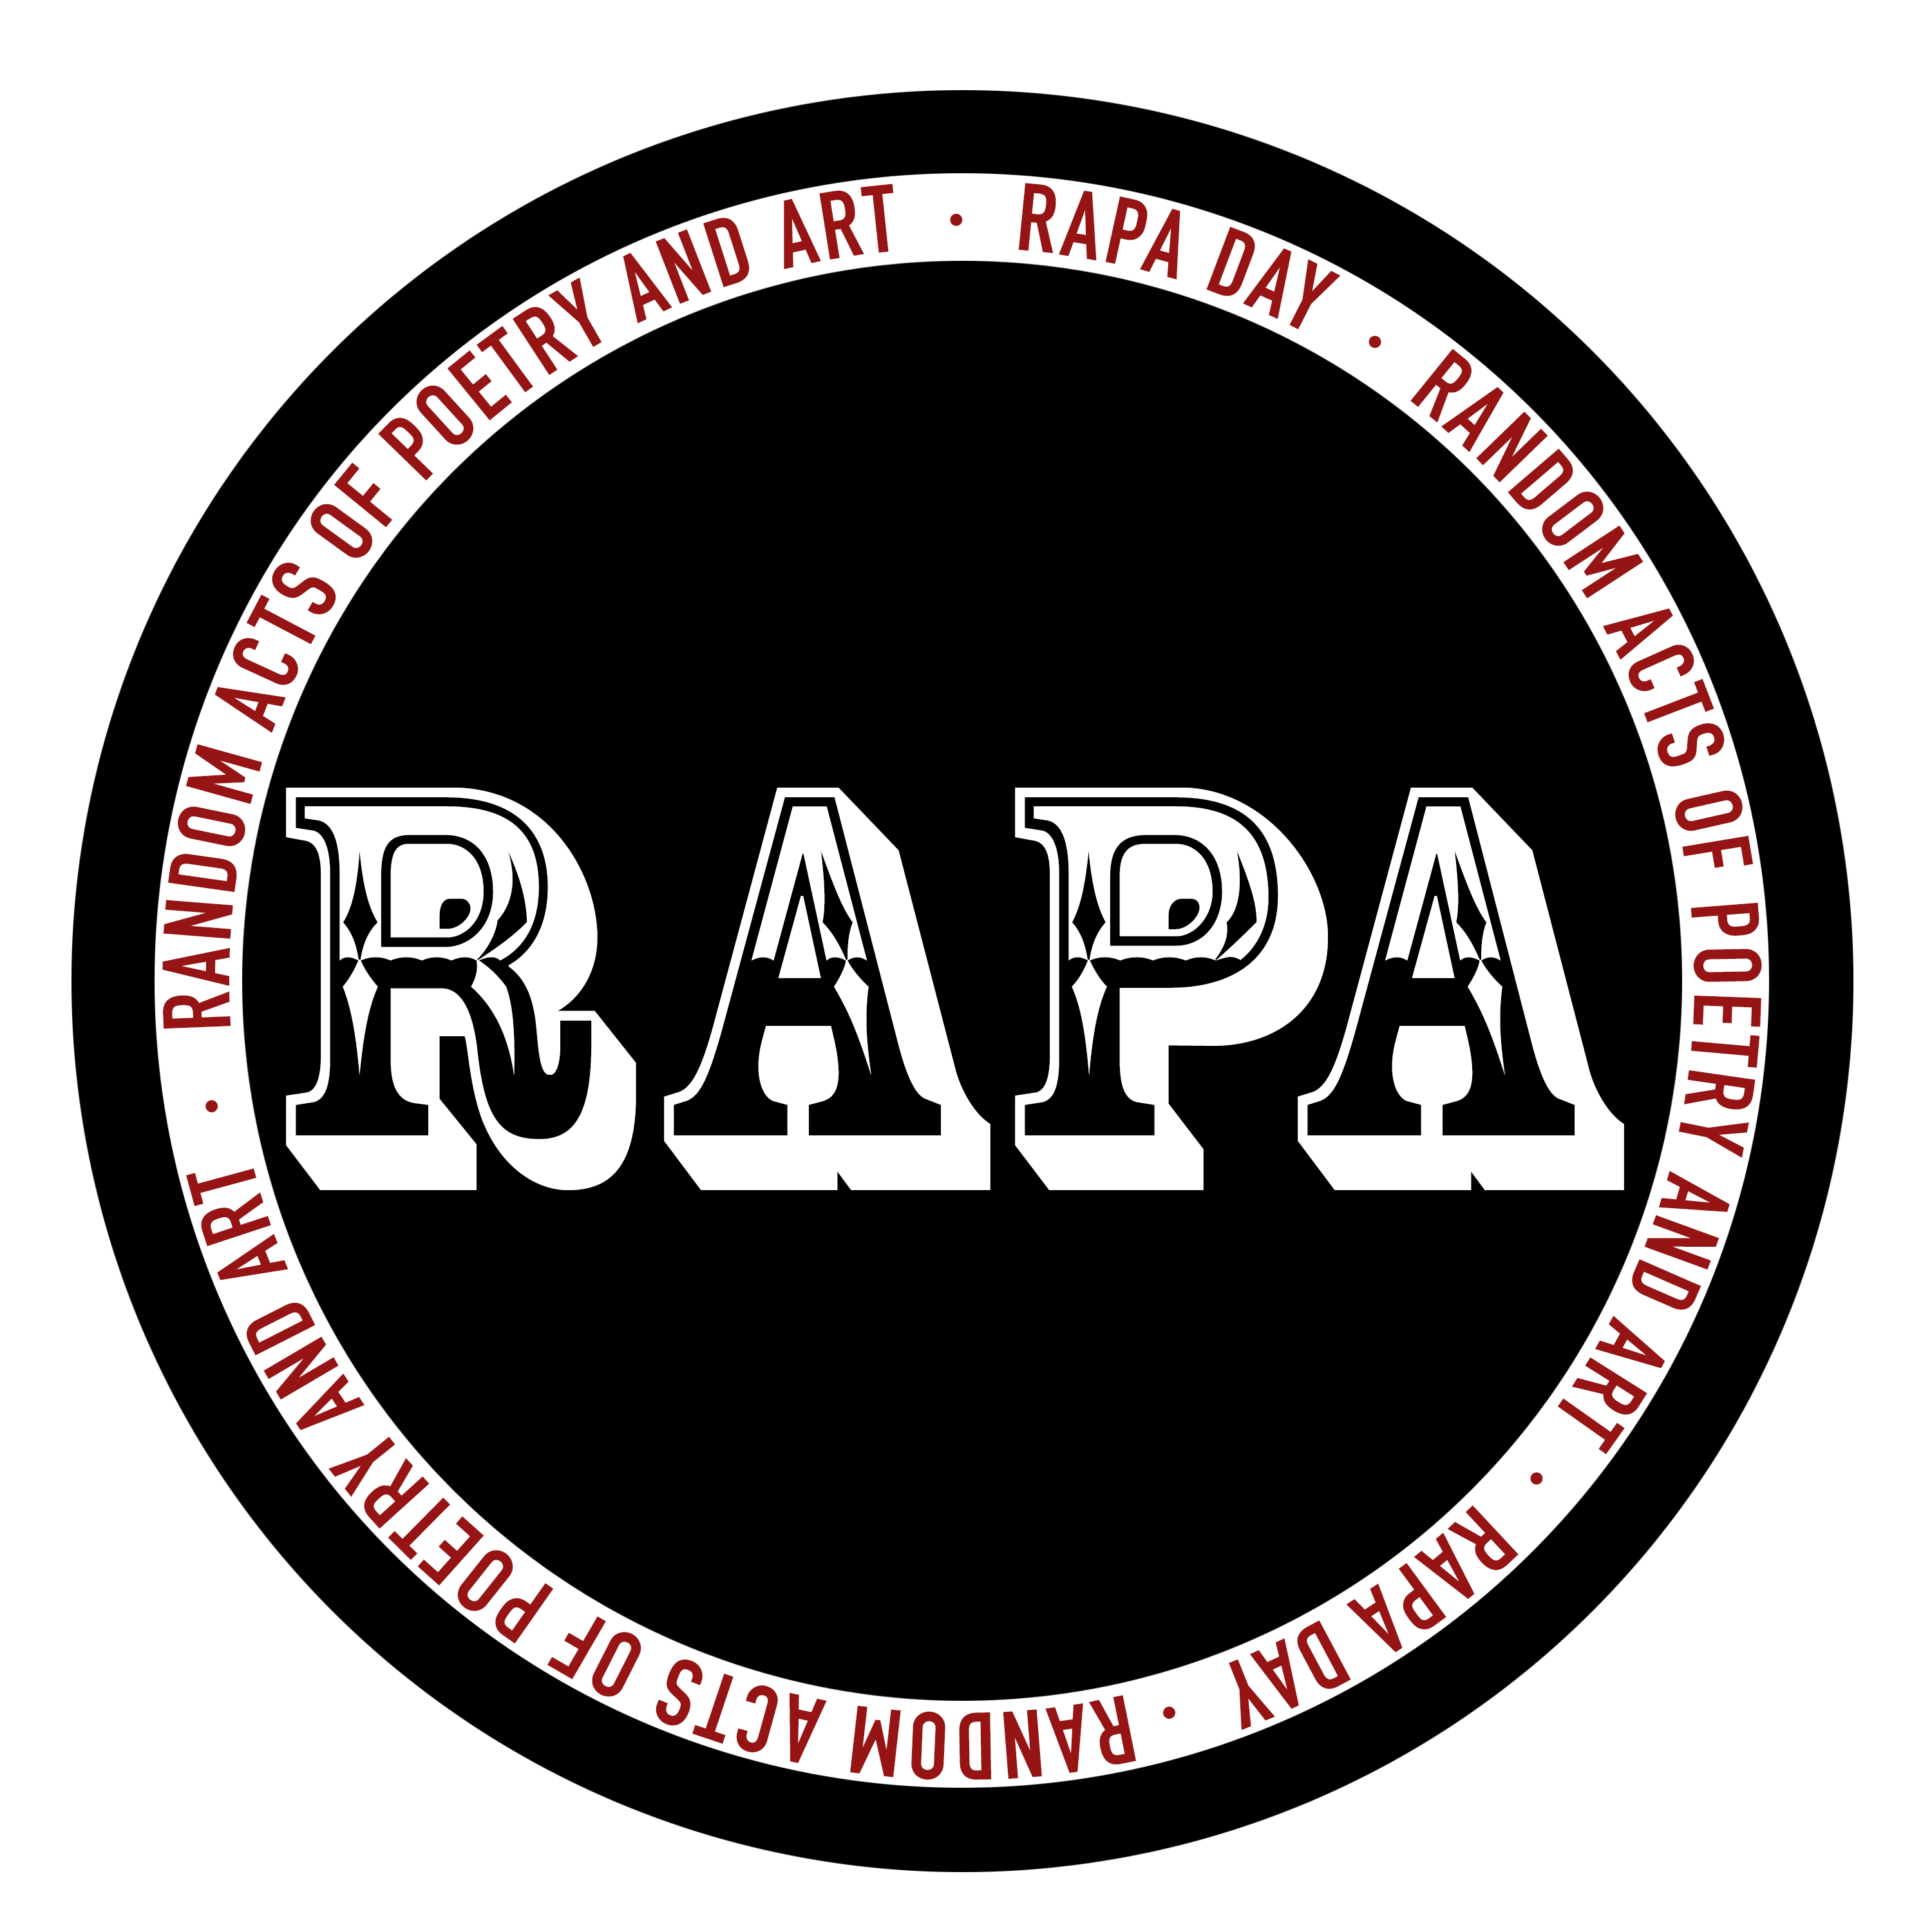 RAPA Day 2020 new logo for Twitter by James V2